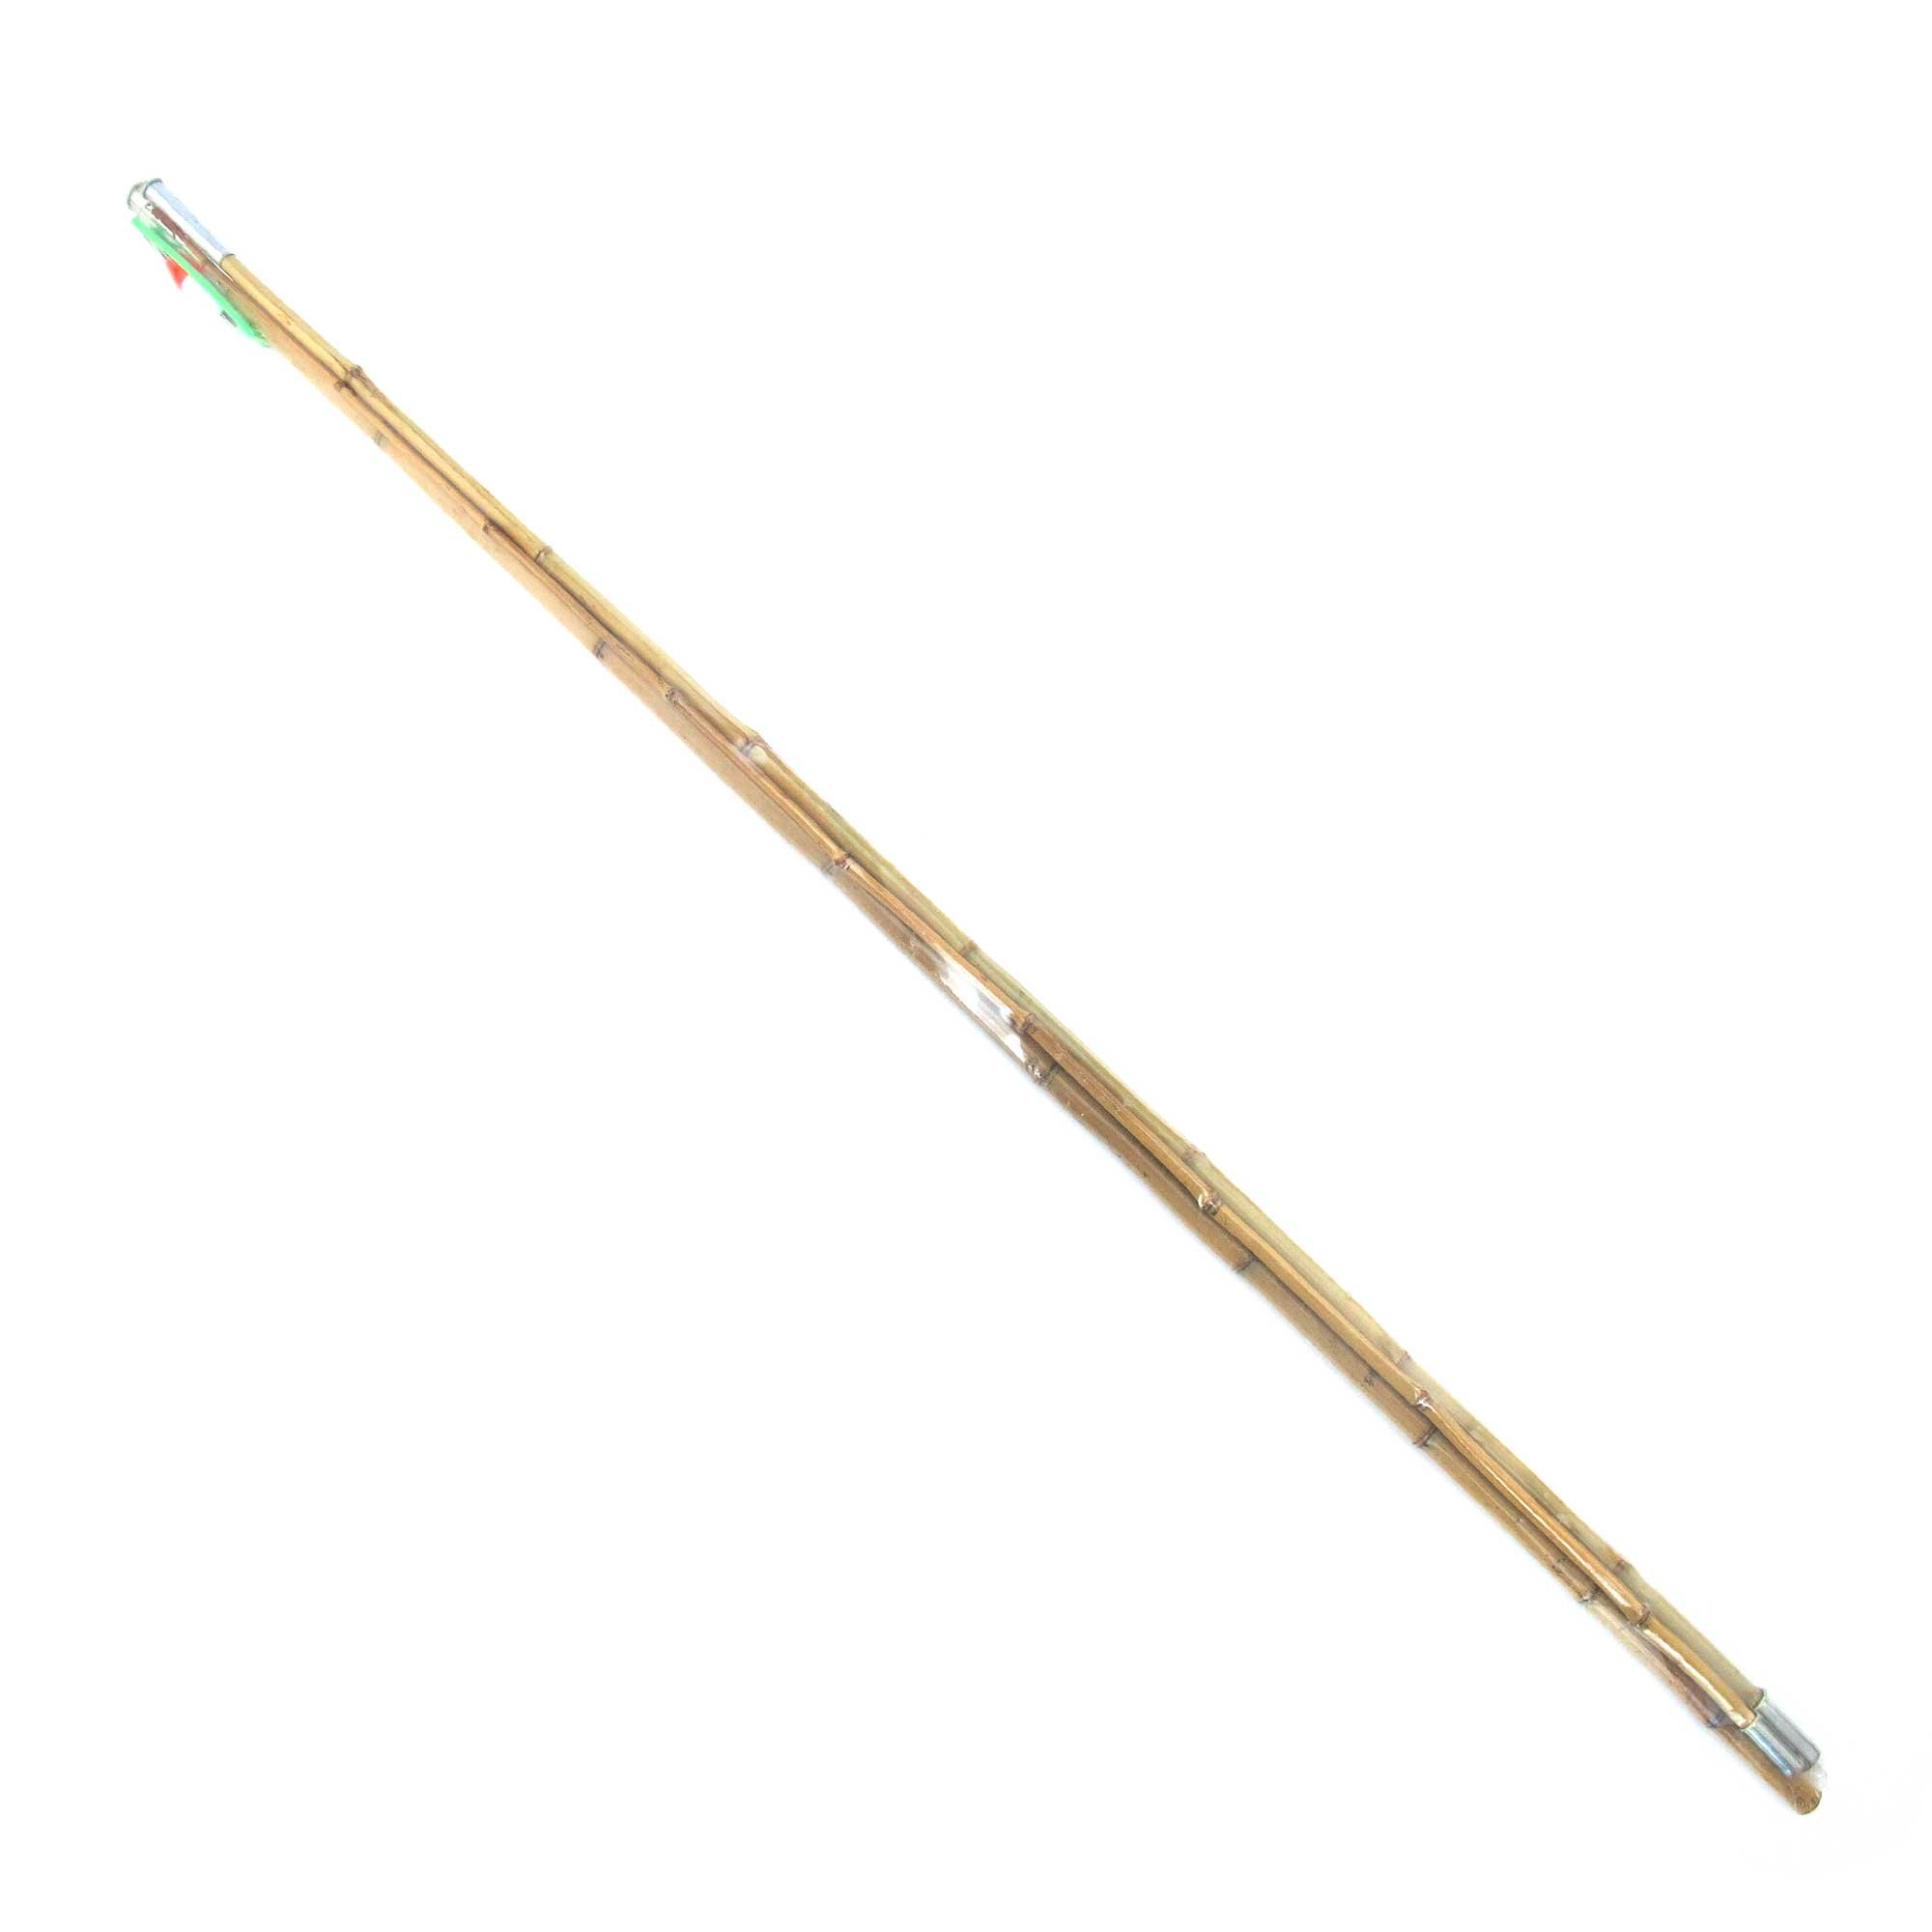 BambooMN 9.75 Ft 3 Piece Natural Bamboo Vintage Cane Fishing Pole with Bobber, Hook, Line and Sinker, 1 Set by BambooMN (Image #1)